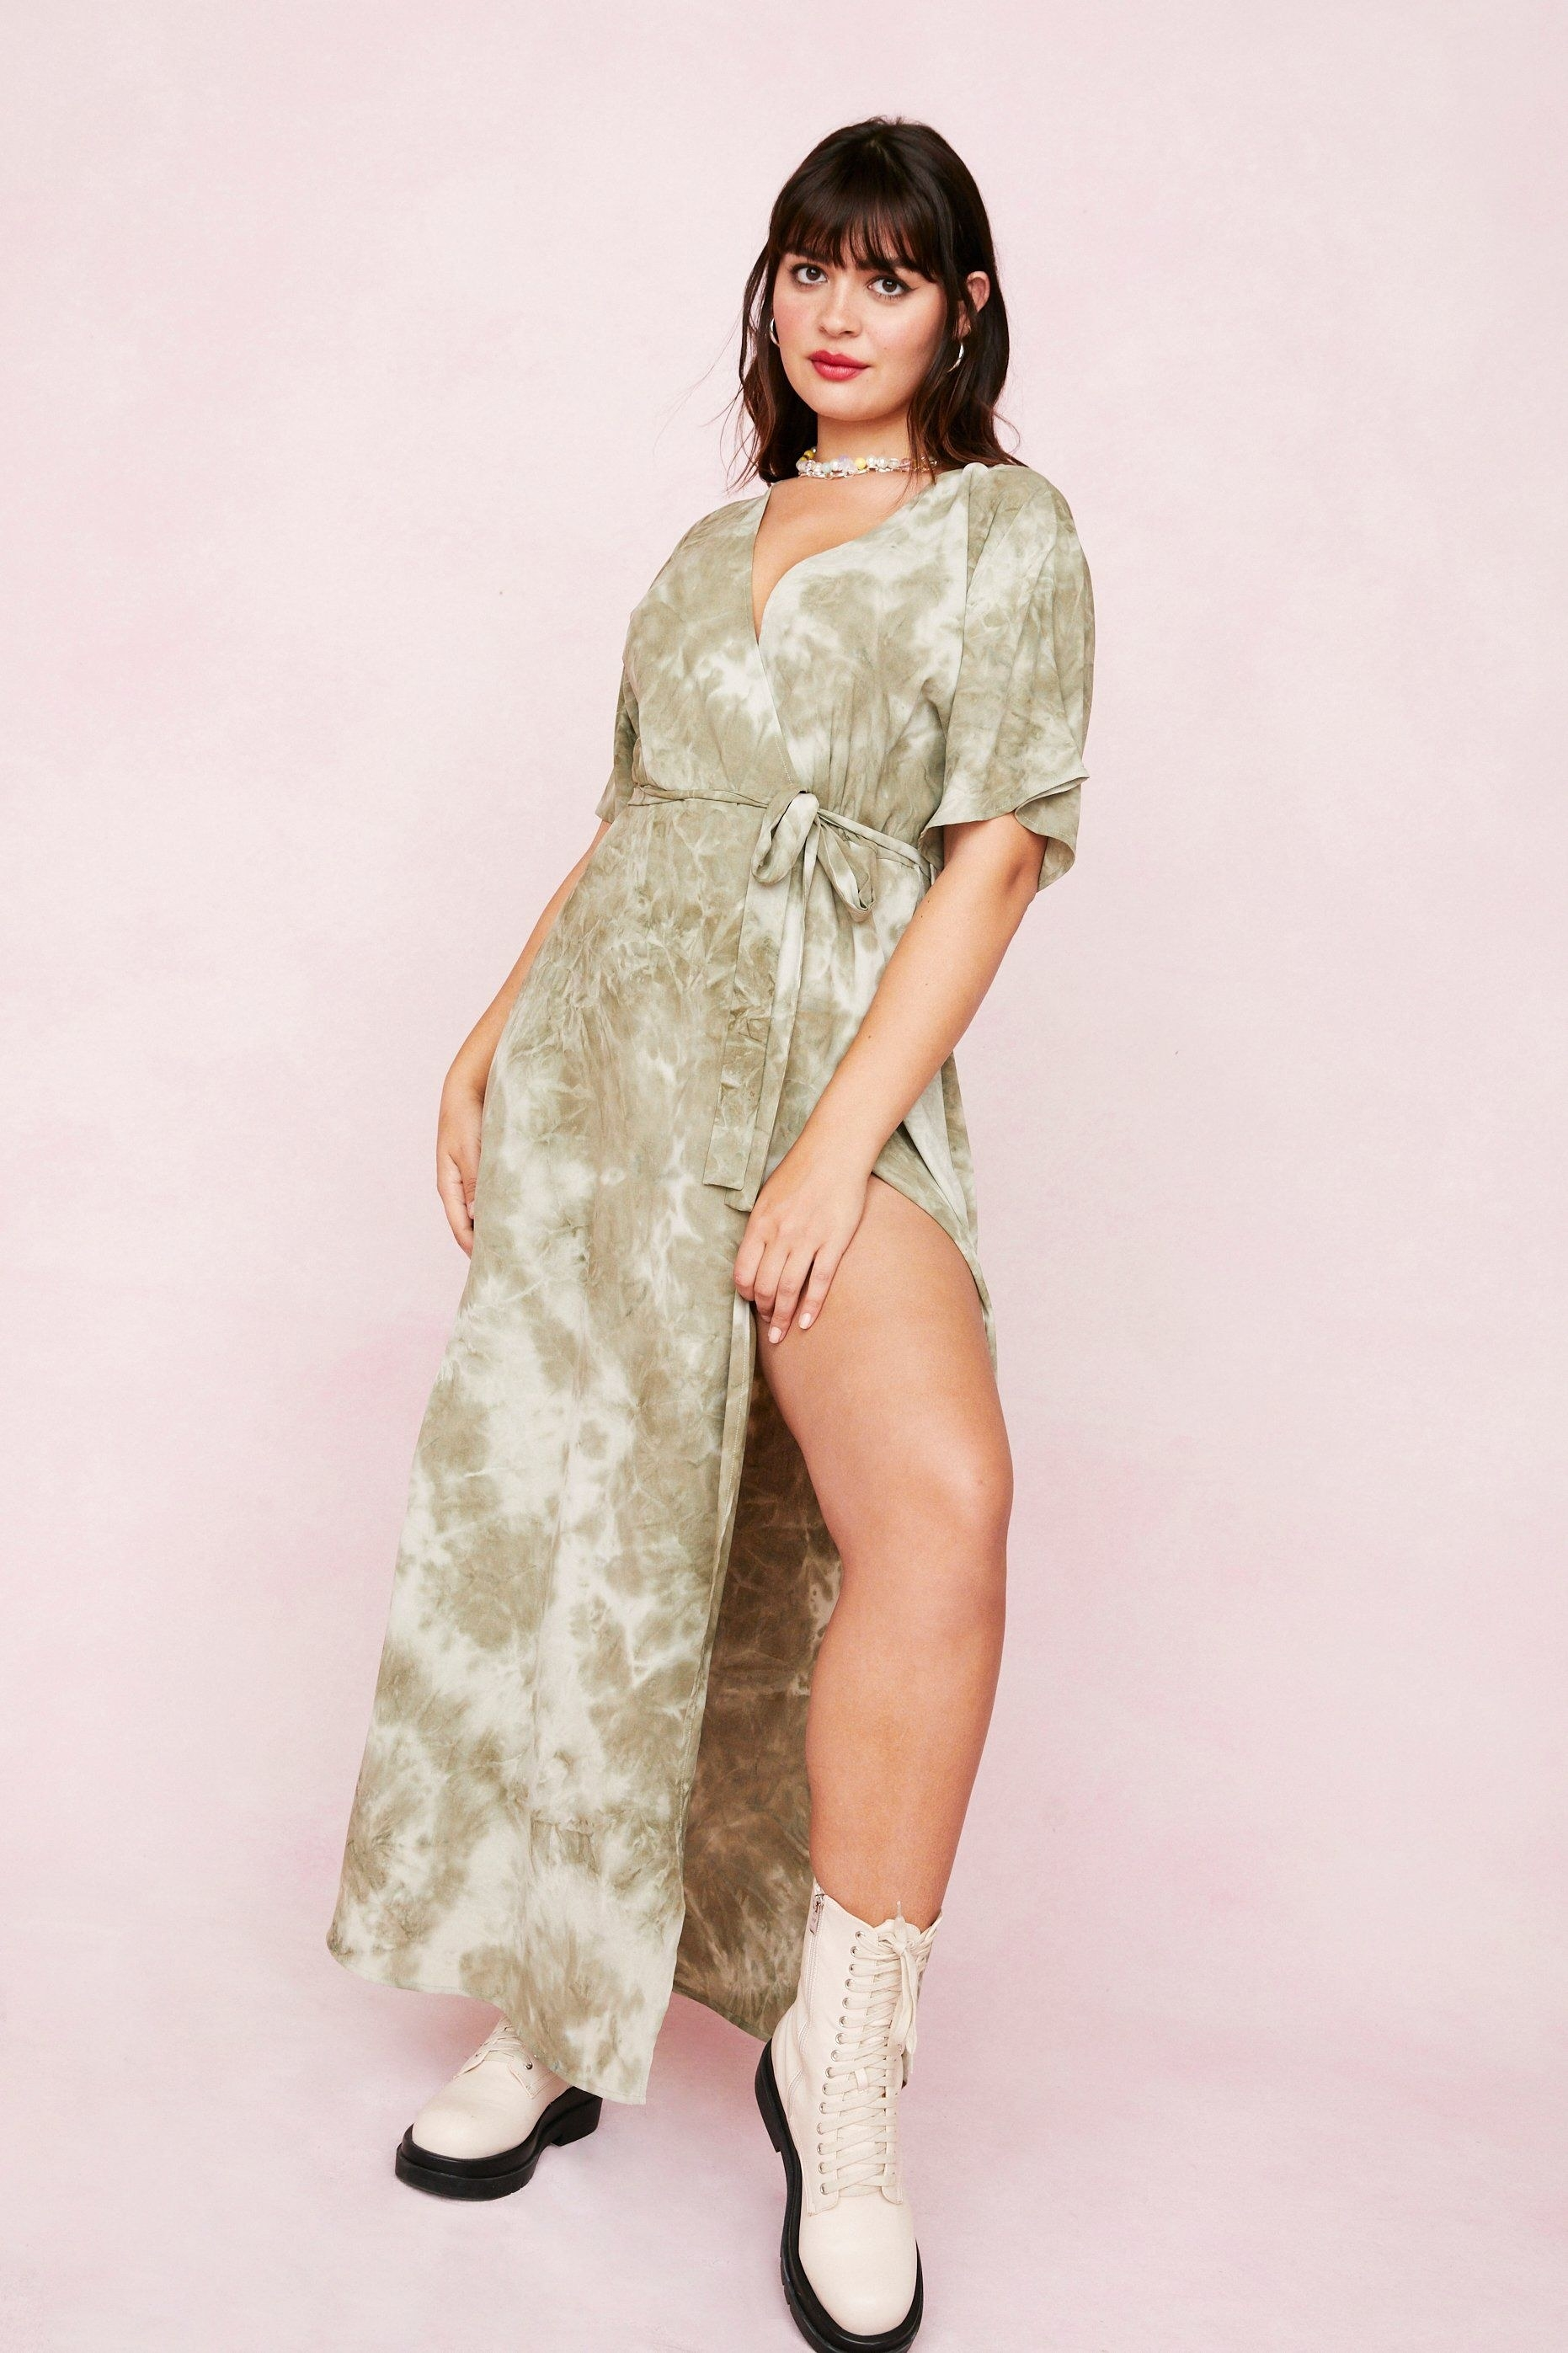 the olive and white tie-dye dress